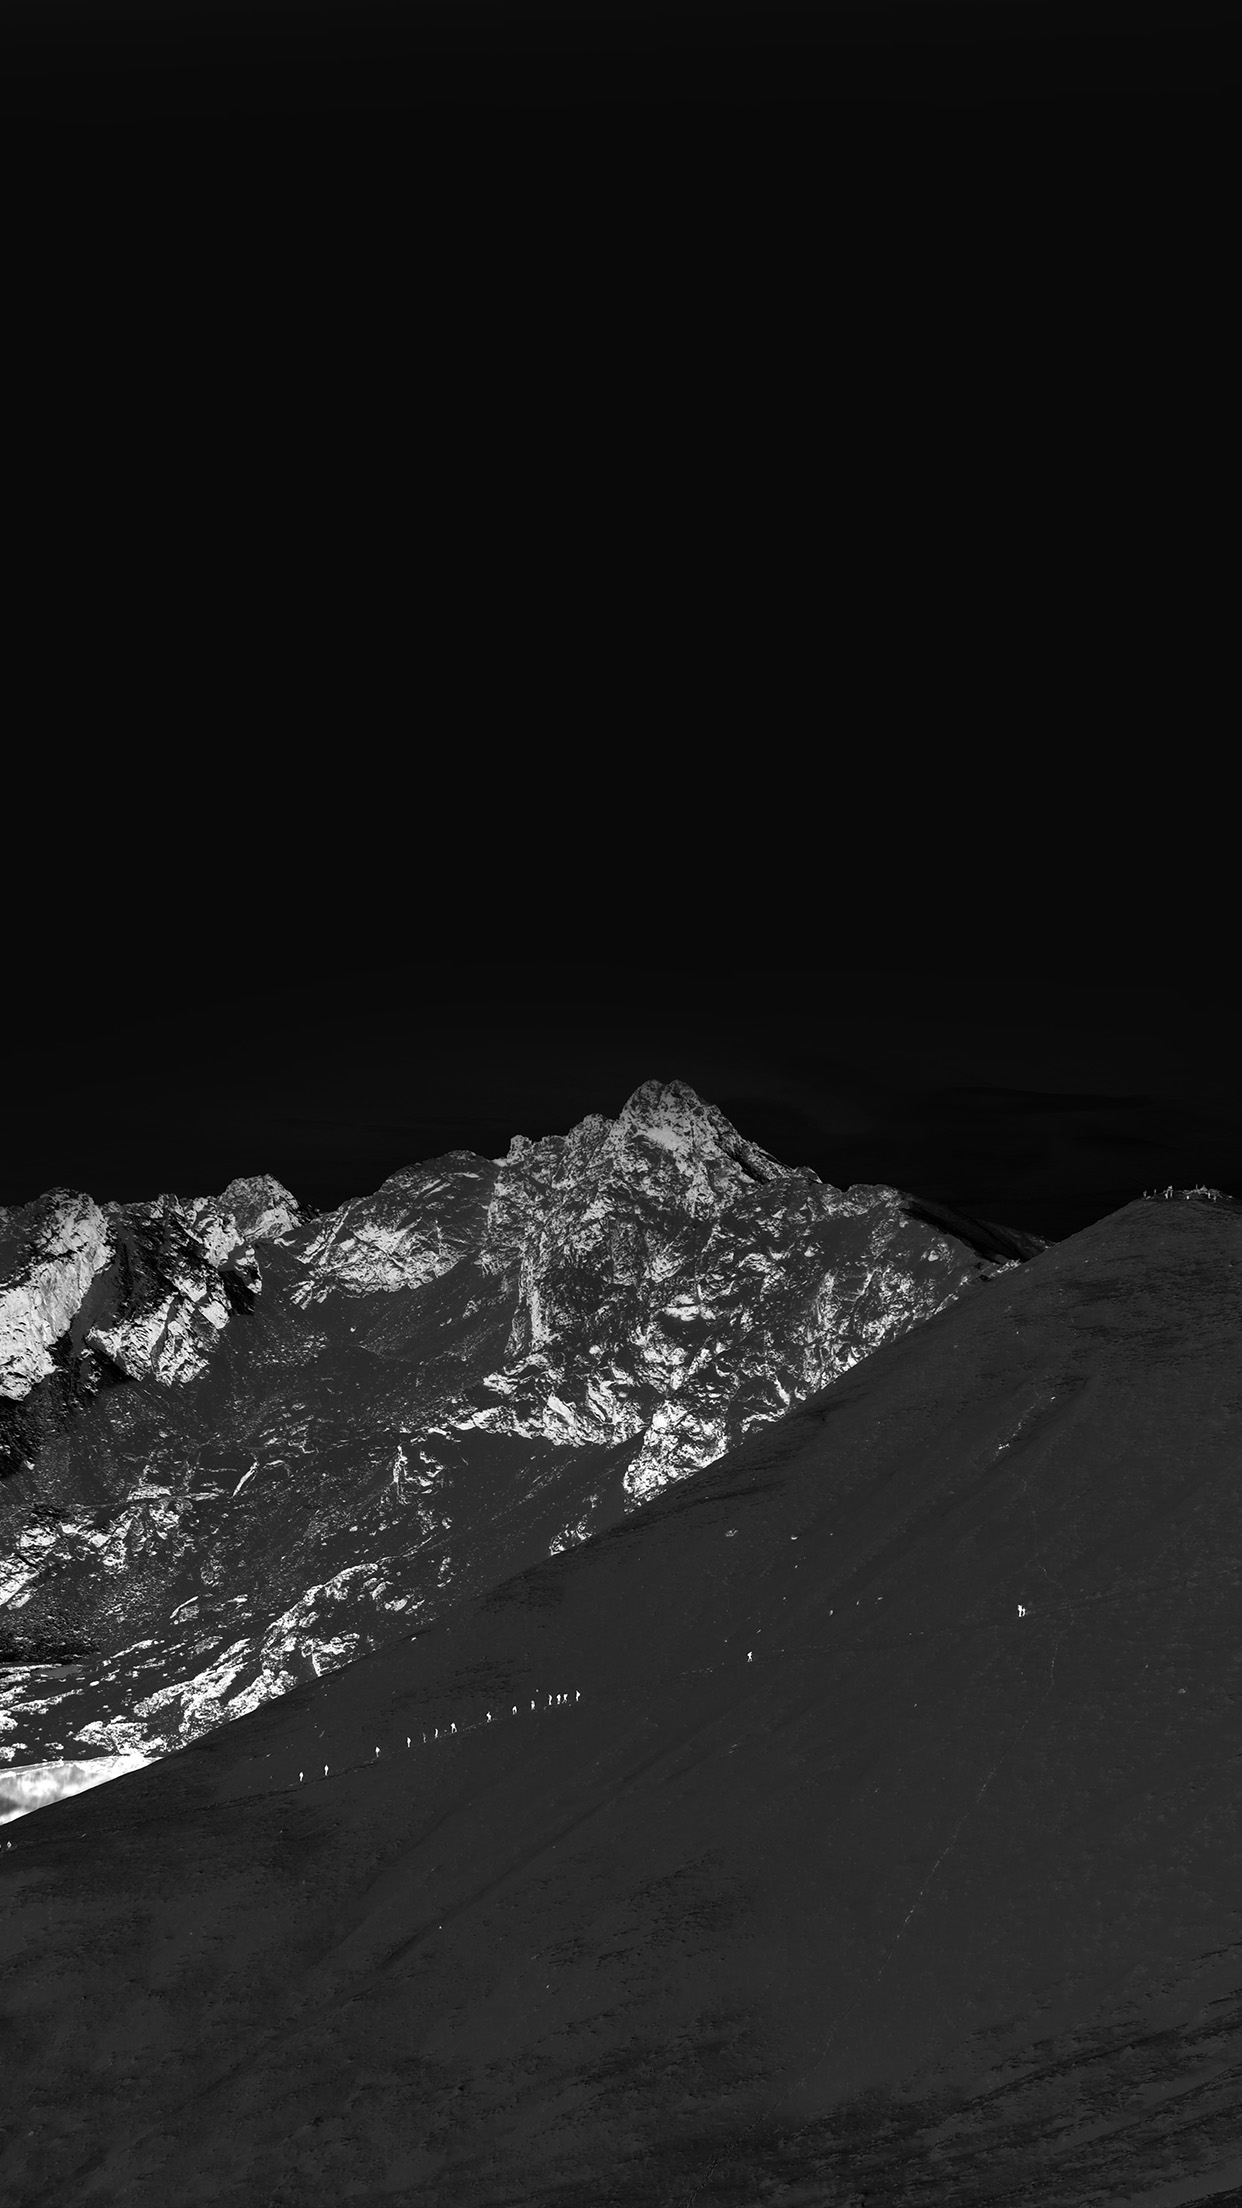 Amazing Wallpaper Mountain Ios 7 - Winter-Mountain-Snow-Bw-Nature-Dark  Graphic_95943.jpg